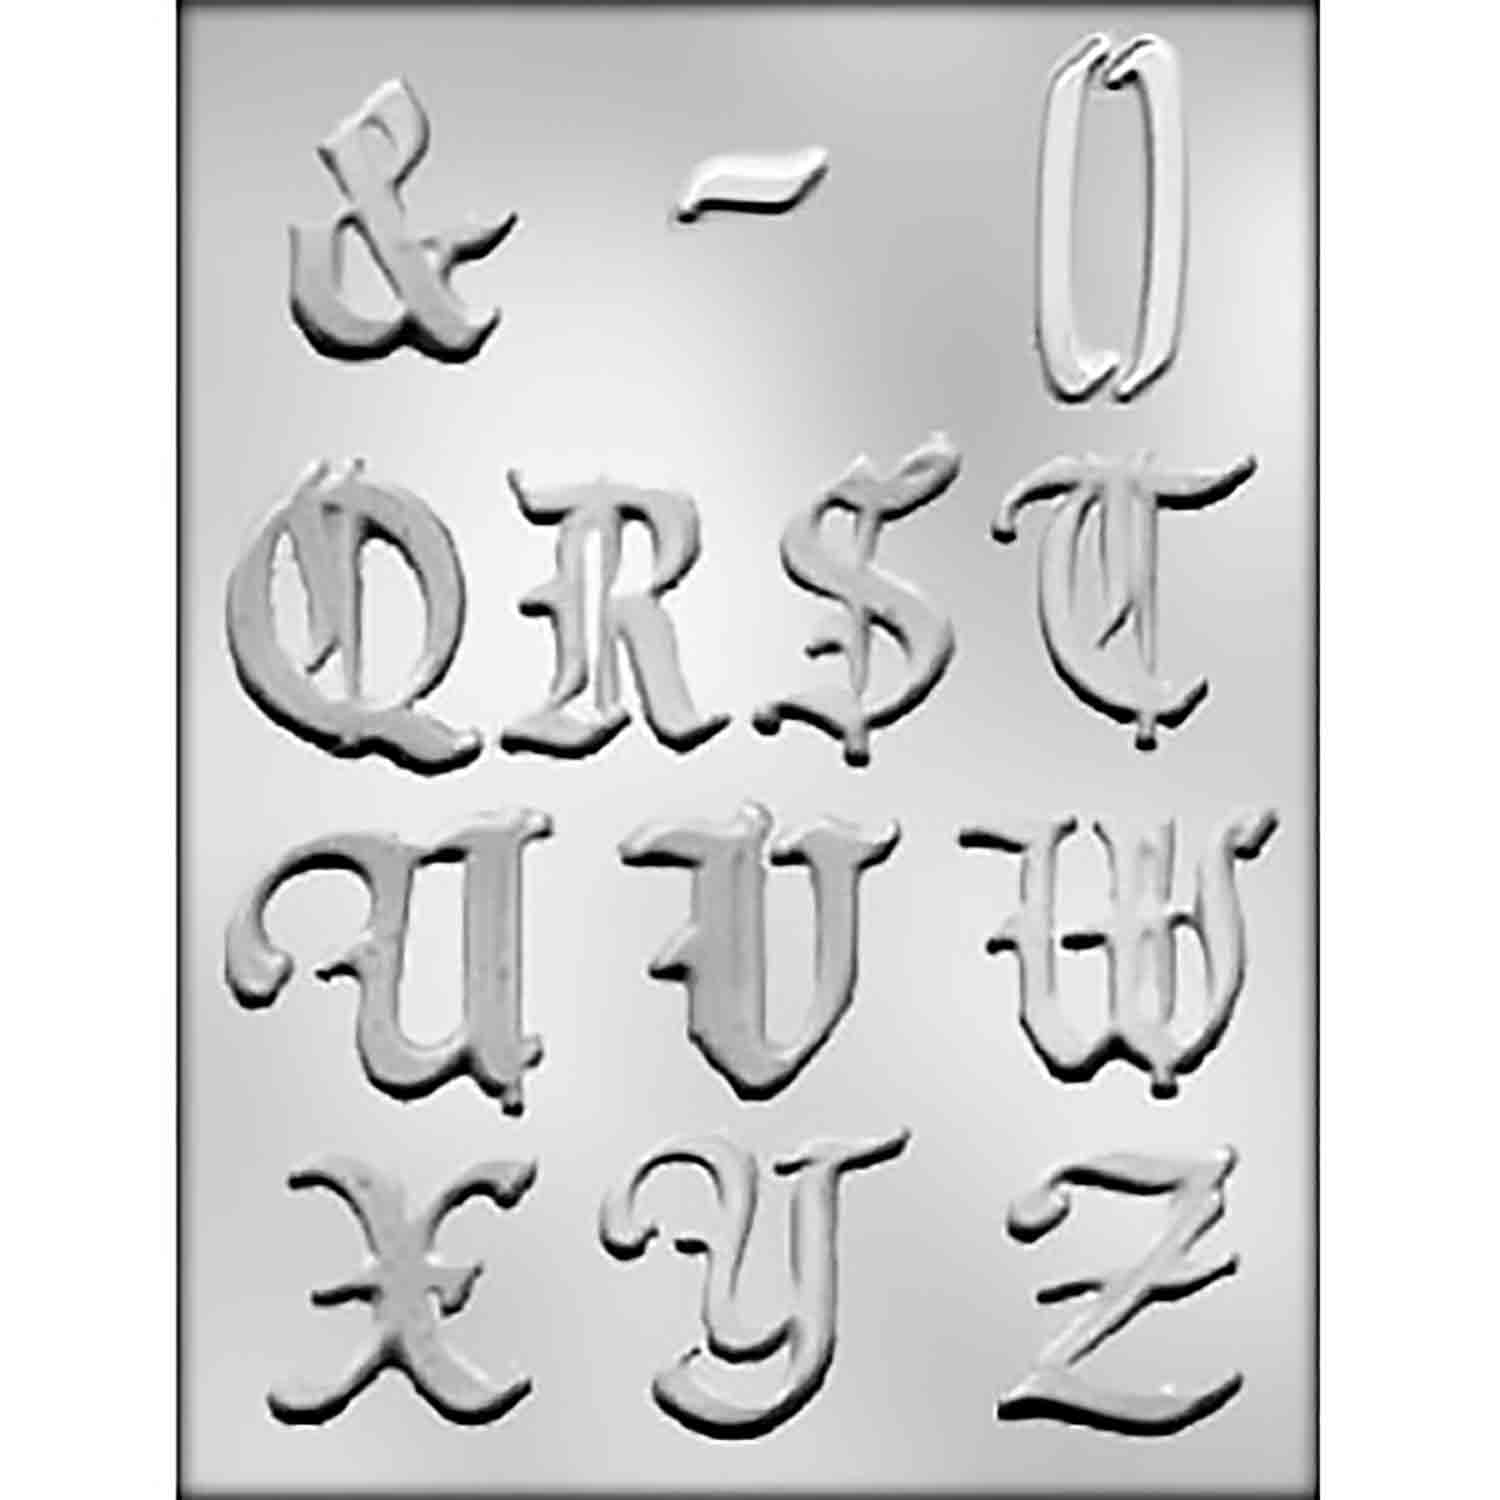 Calligraphy Alphabet Q-Z Chocolate Candy Mold